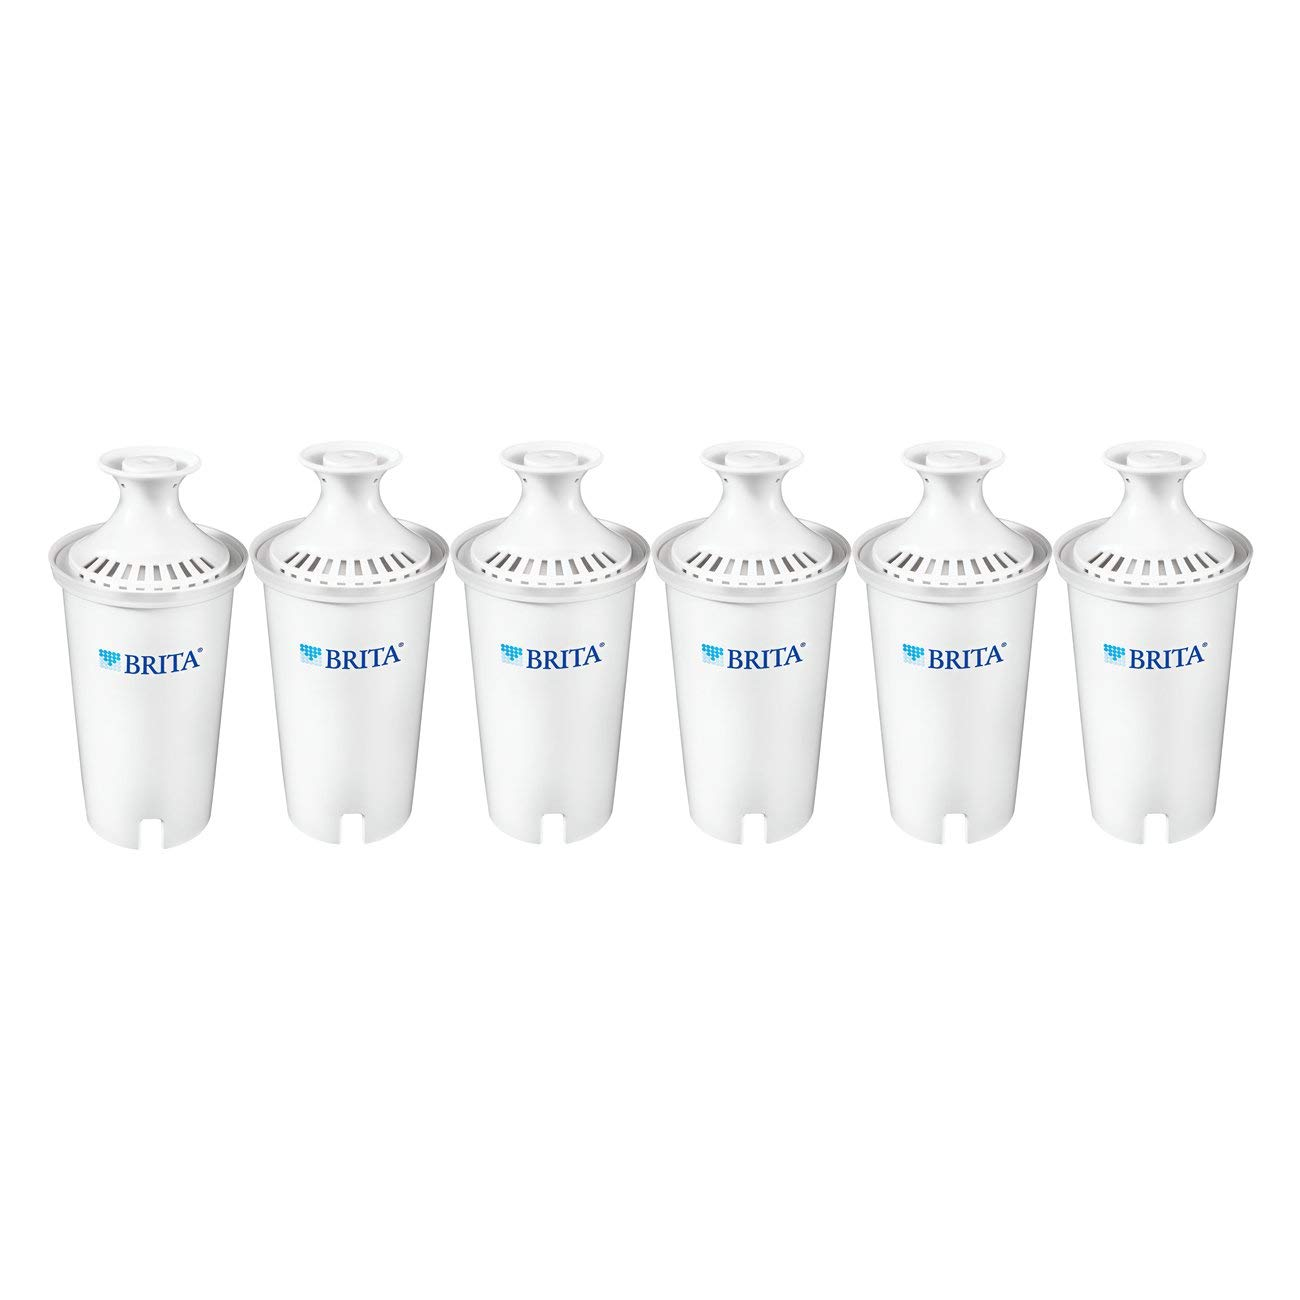 Brita 35557 Water Pitcher Replacement Filters, White-6 pk, 6ct 6ct